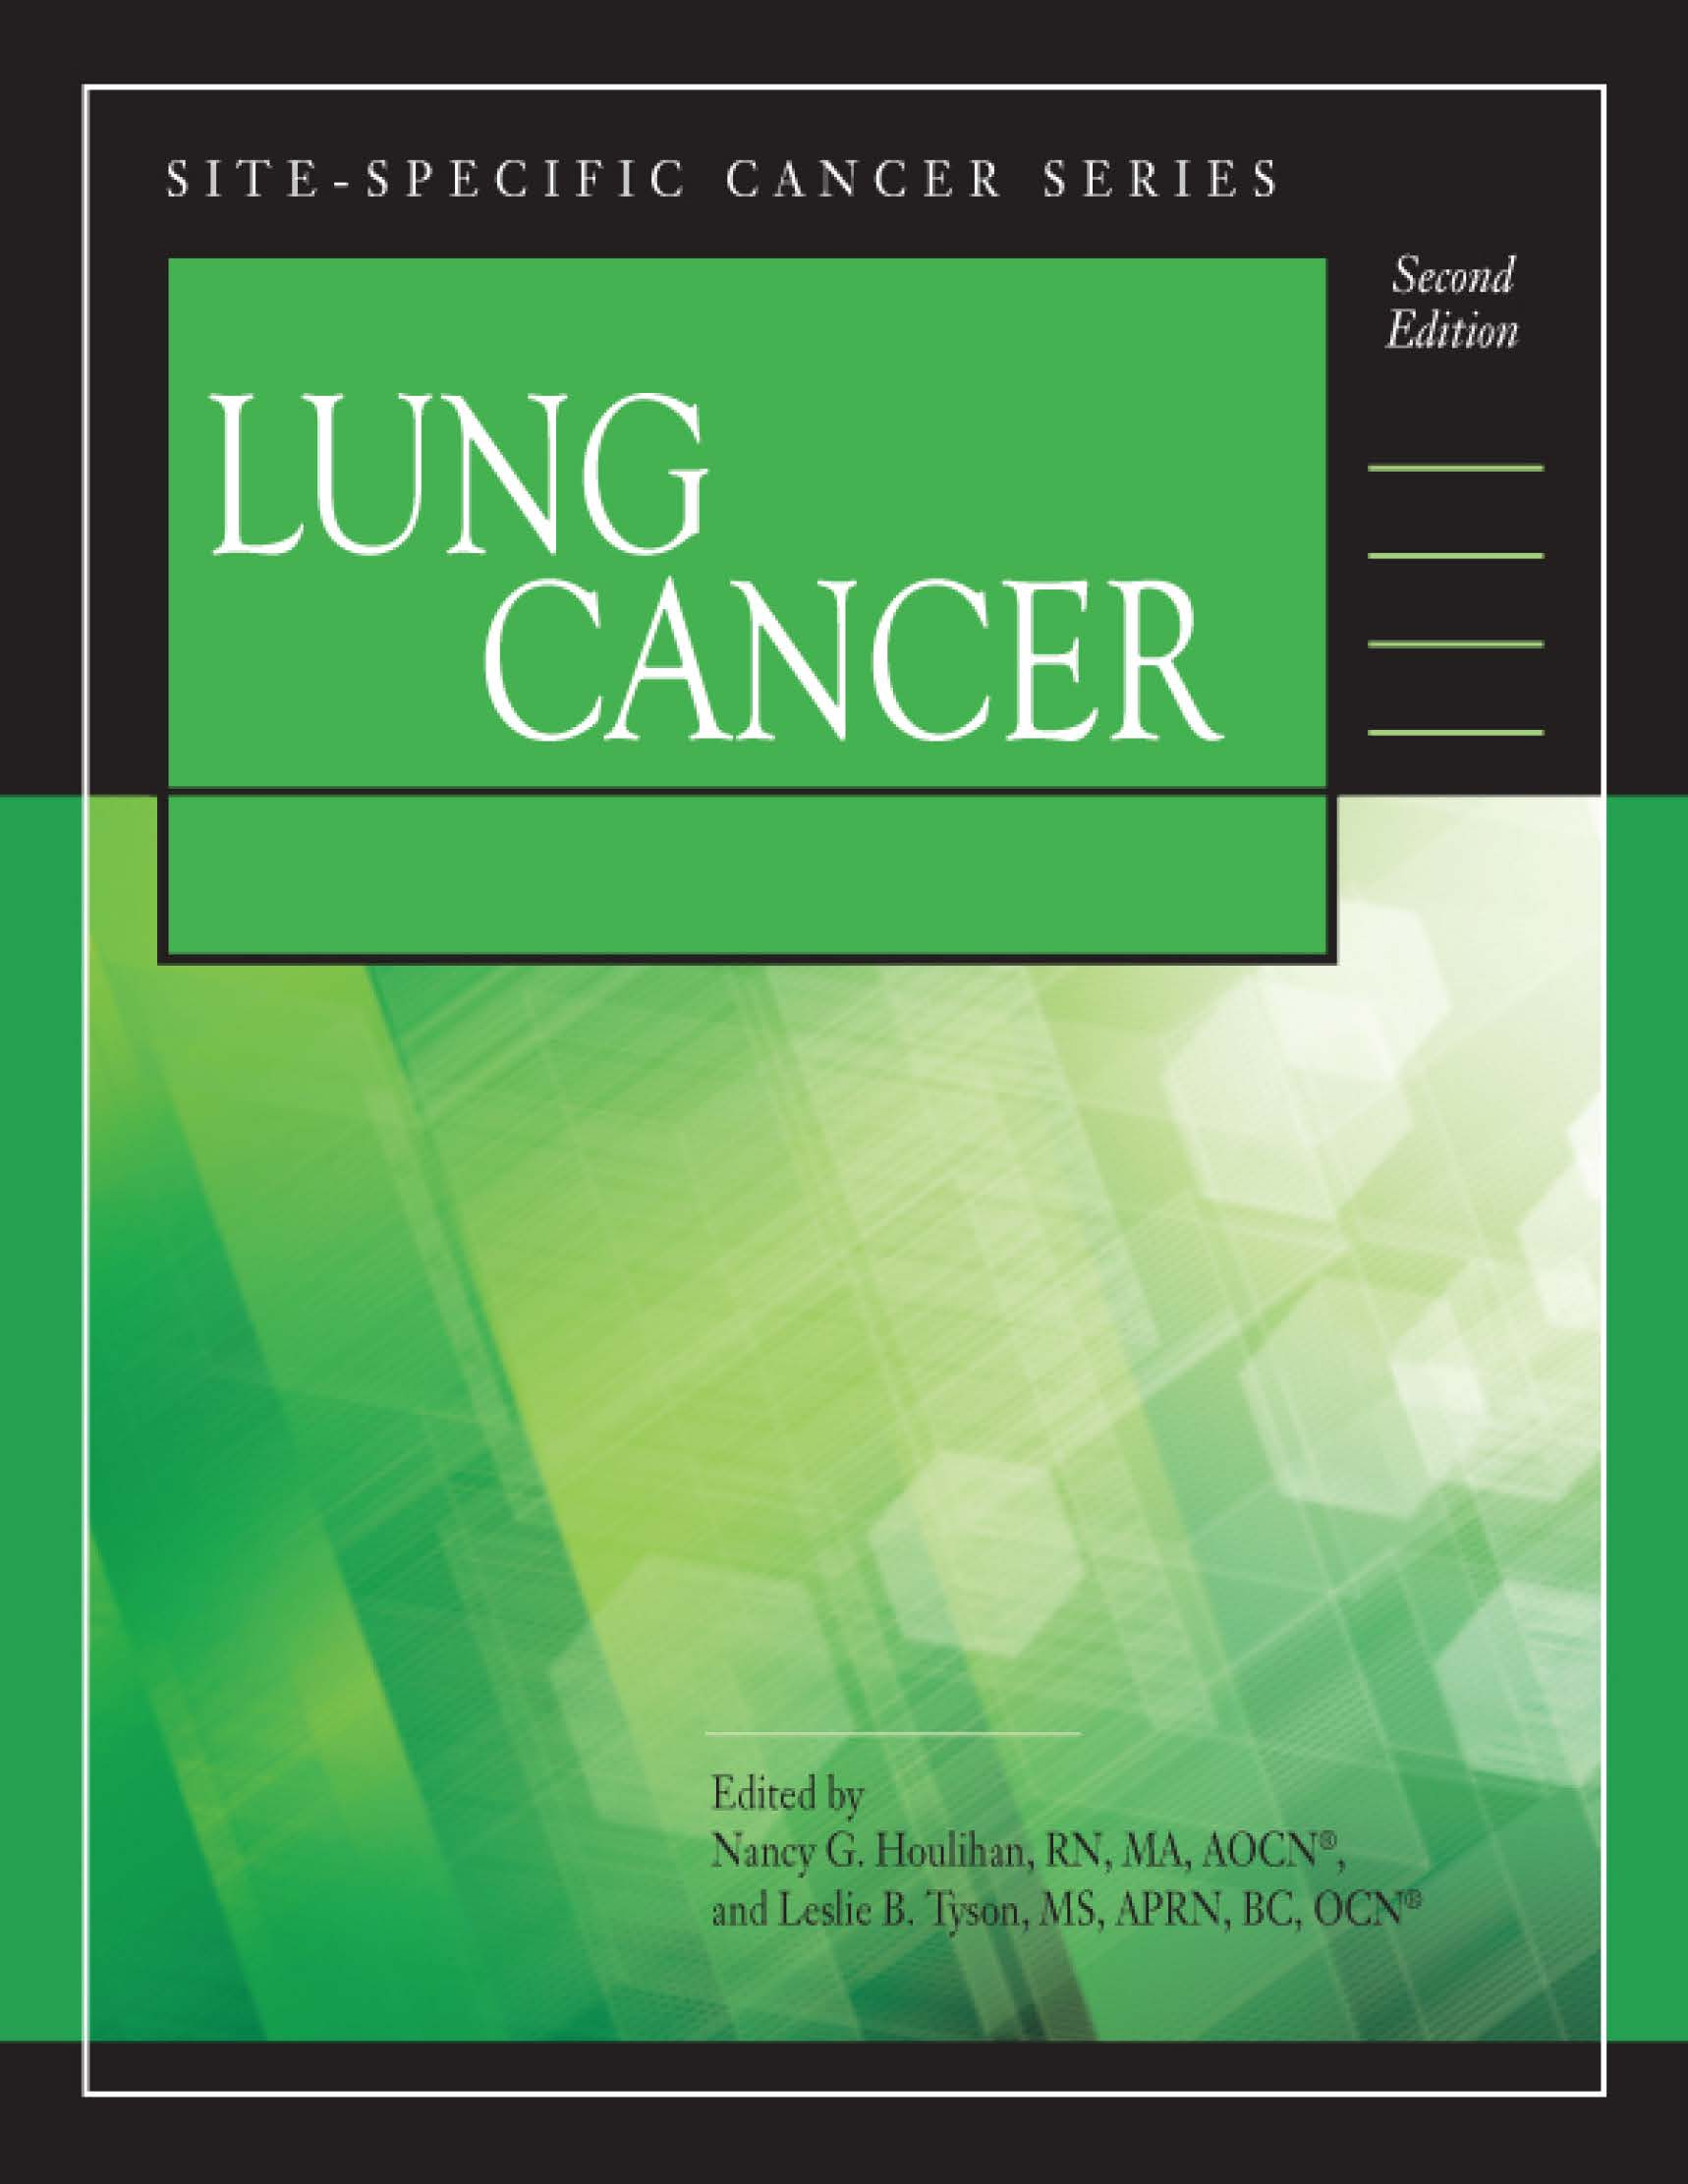 Site-Specific Lung Cancer